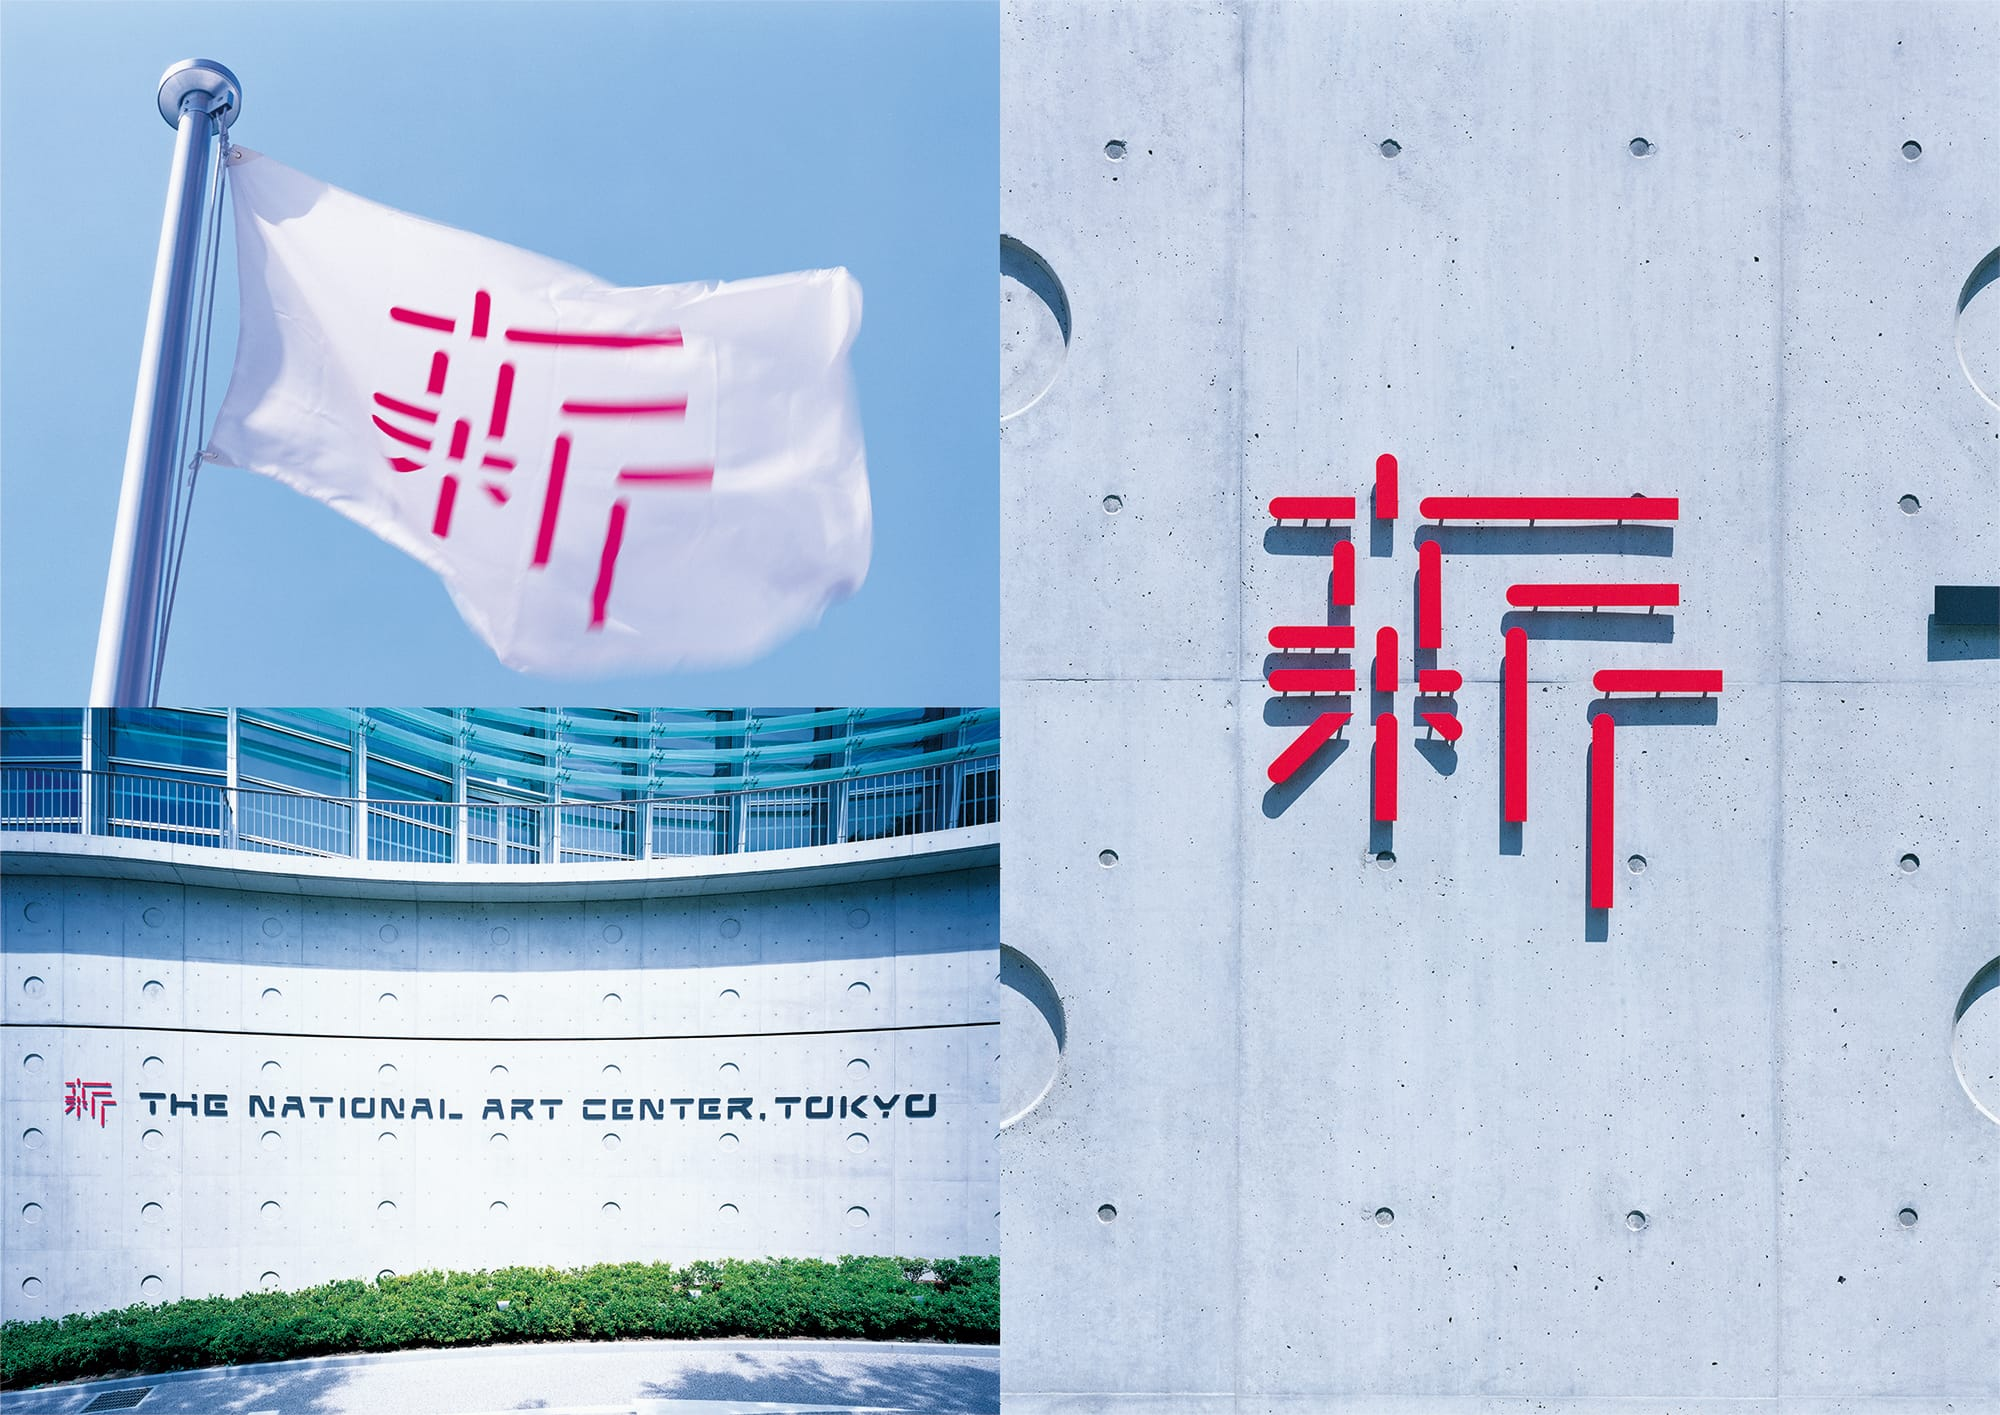 """In 2007, Sato designed the logo for the NACT which opened in Roppongi. Since the museum focused on new concepts such as being a museum without a collection and carrying a role as an art information center, Sato chose the Japanese kanji character """"shin"""" (new) for their symbol mark."""